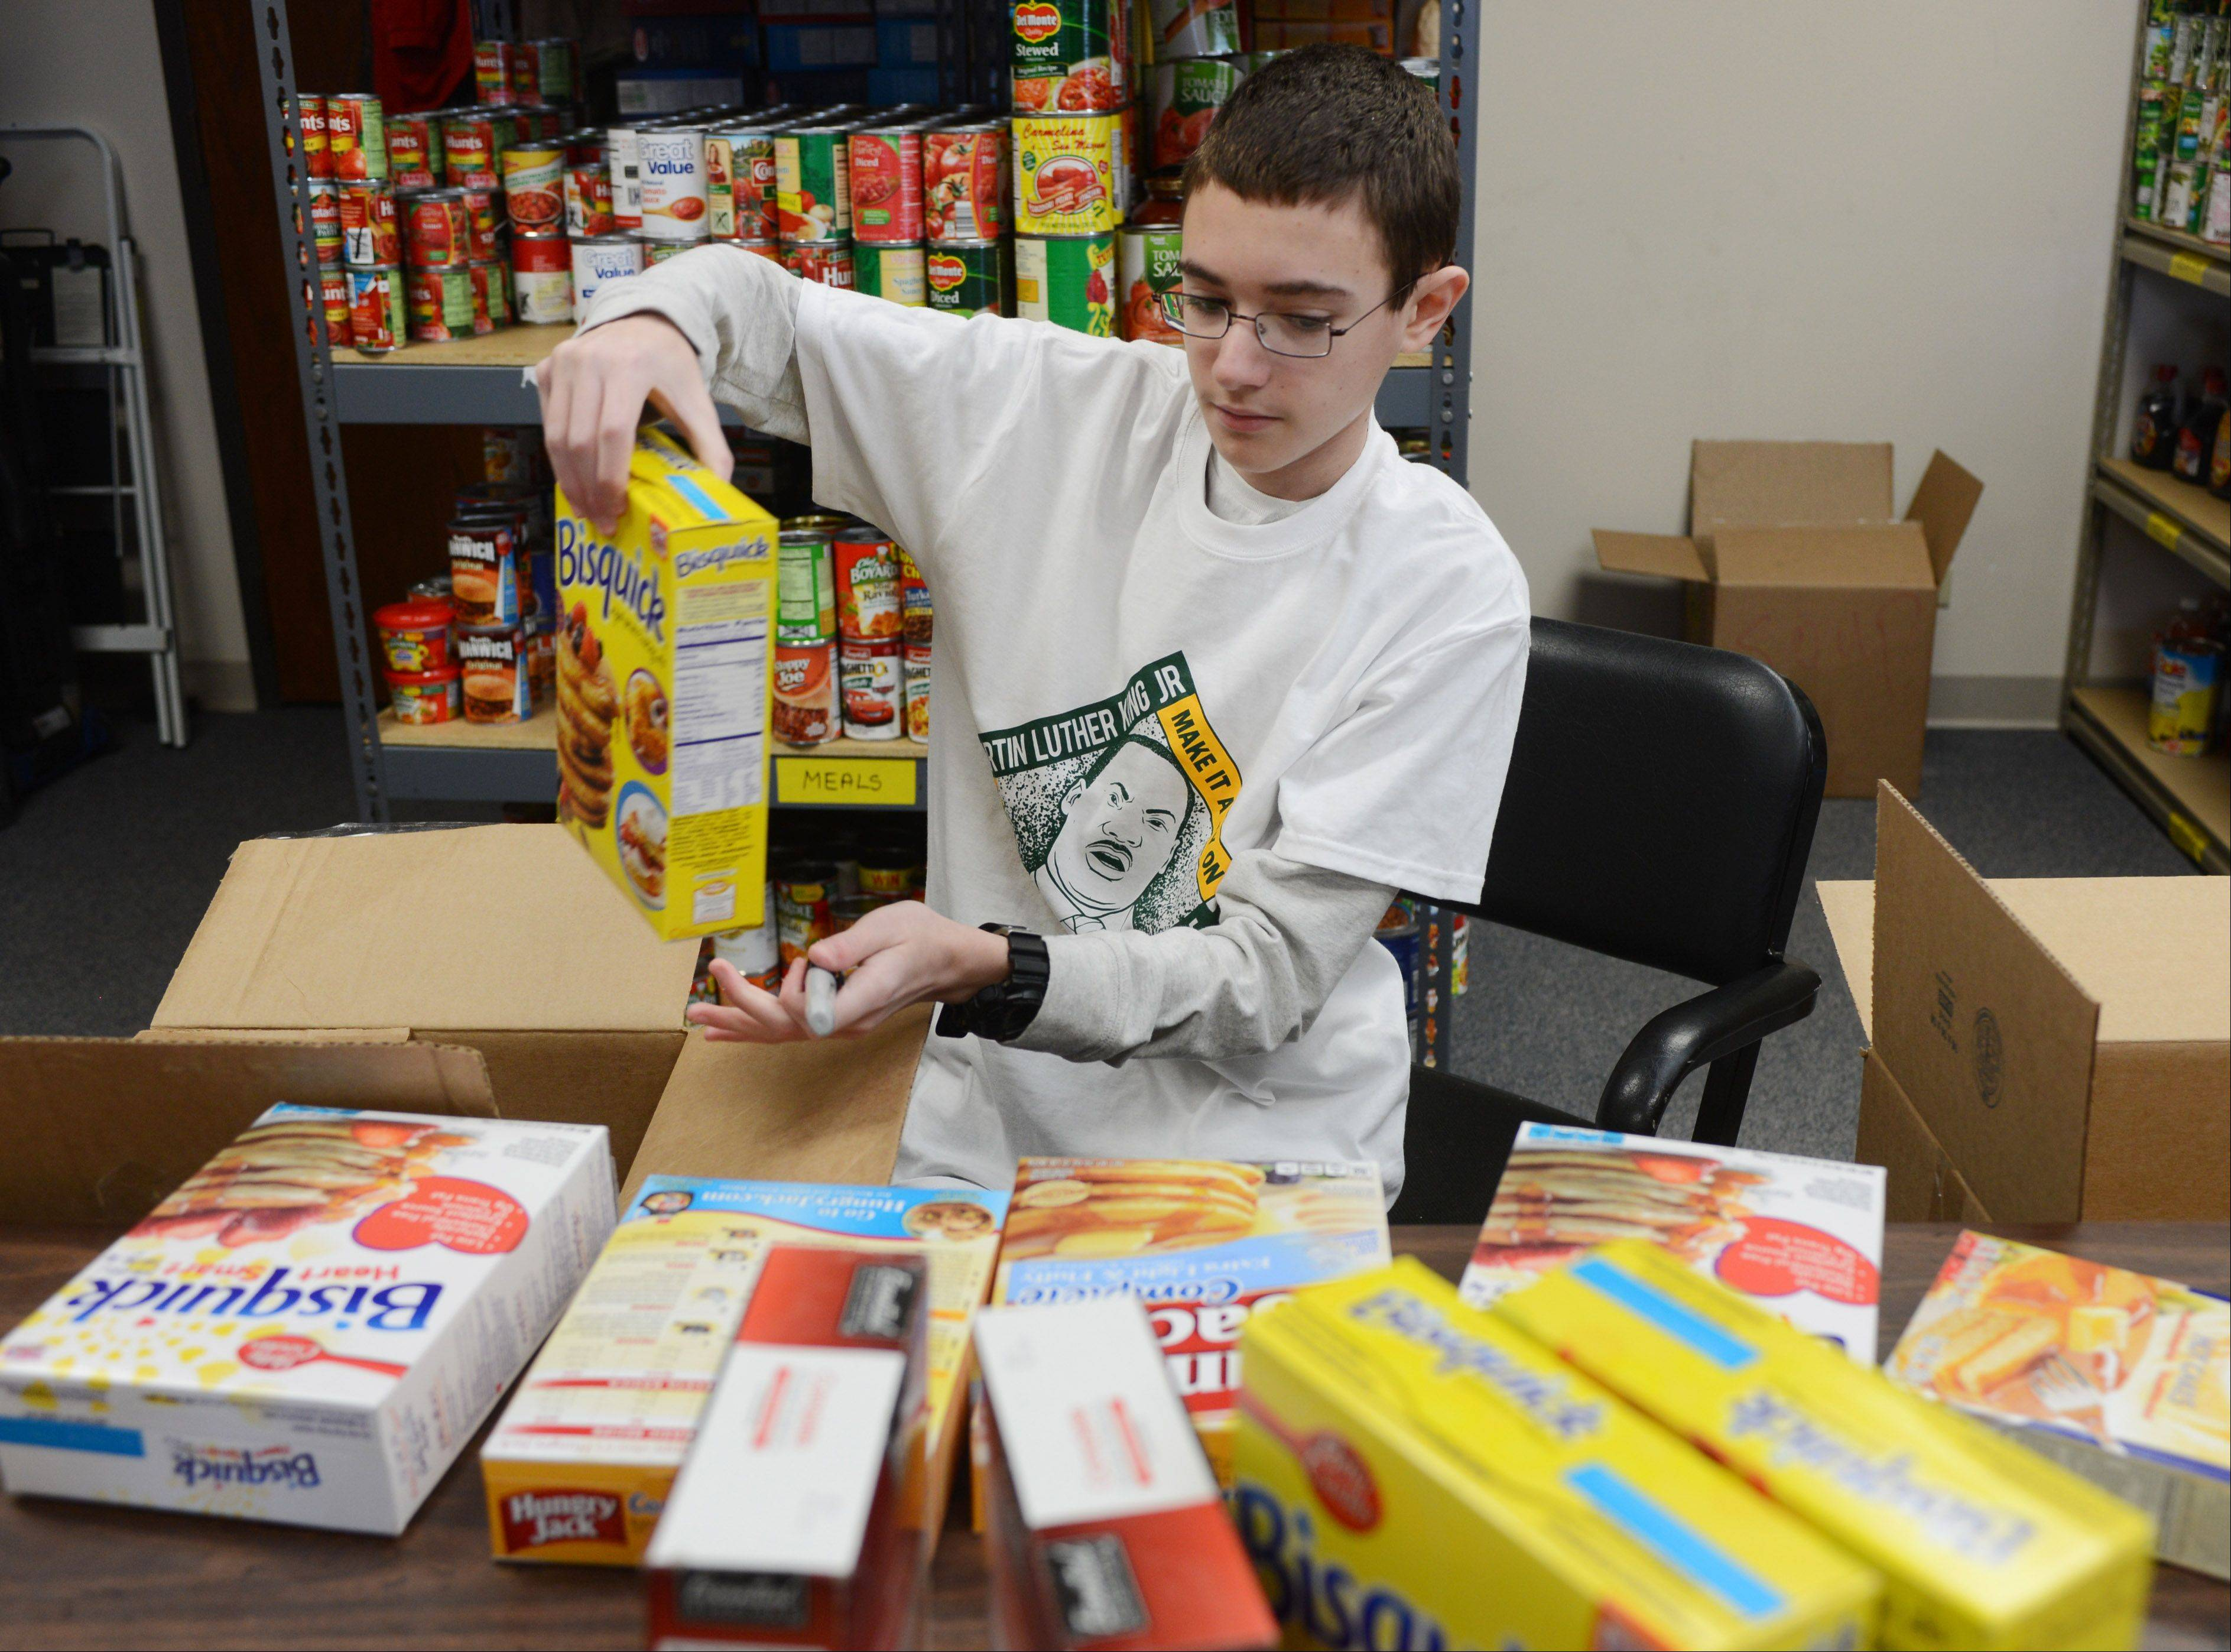 Stevenson High School freshman Matthew Weiner check expiration dates on pancake mixes Monday at the Vernon Township Food Pantry. Stevenson students fanned out over Lake County to work on community projects for Marting Luther King Jr. Day.